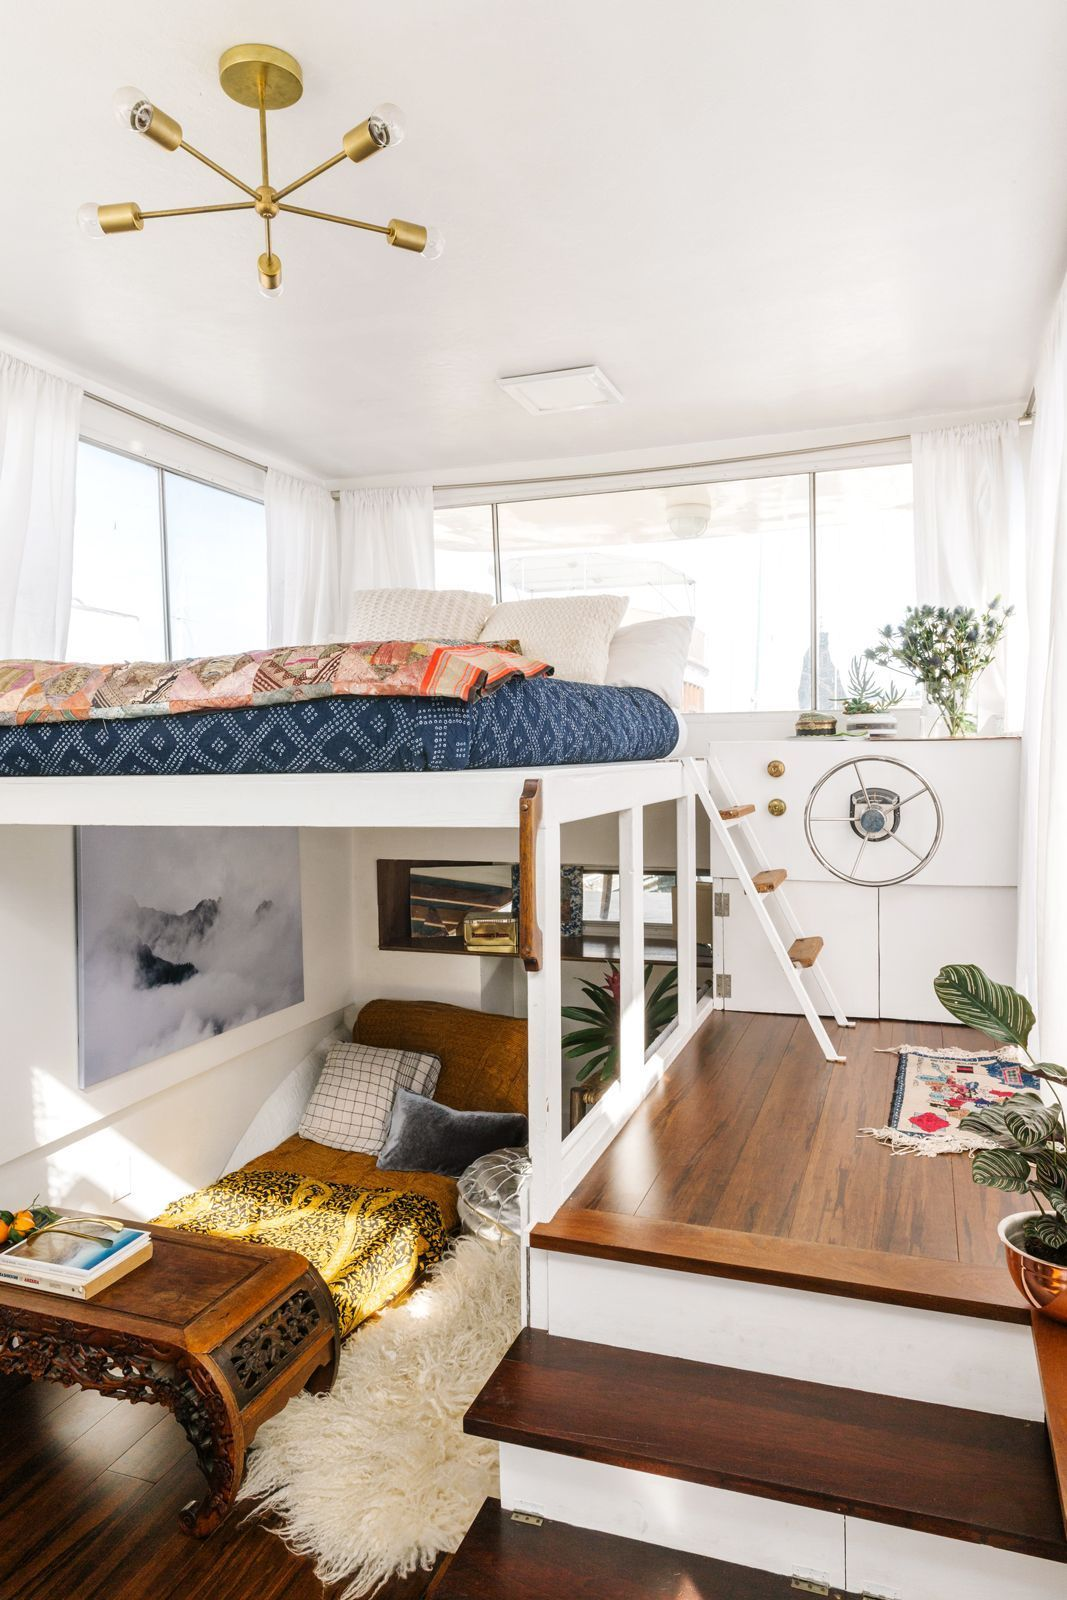 Photo of Tiny House Loft with Bedroom, Guest Bed, Storage and Shelving